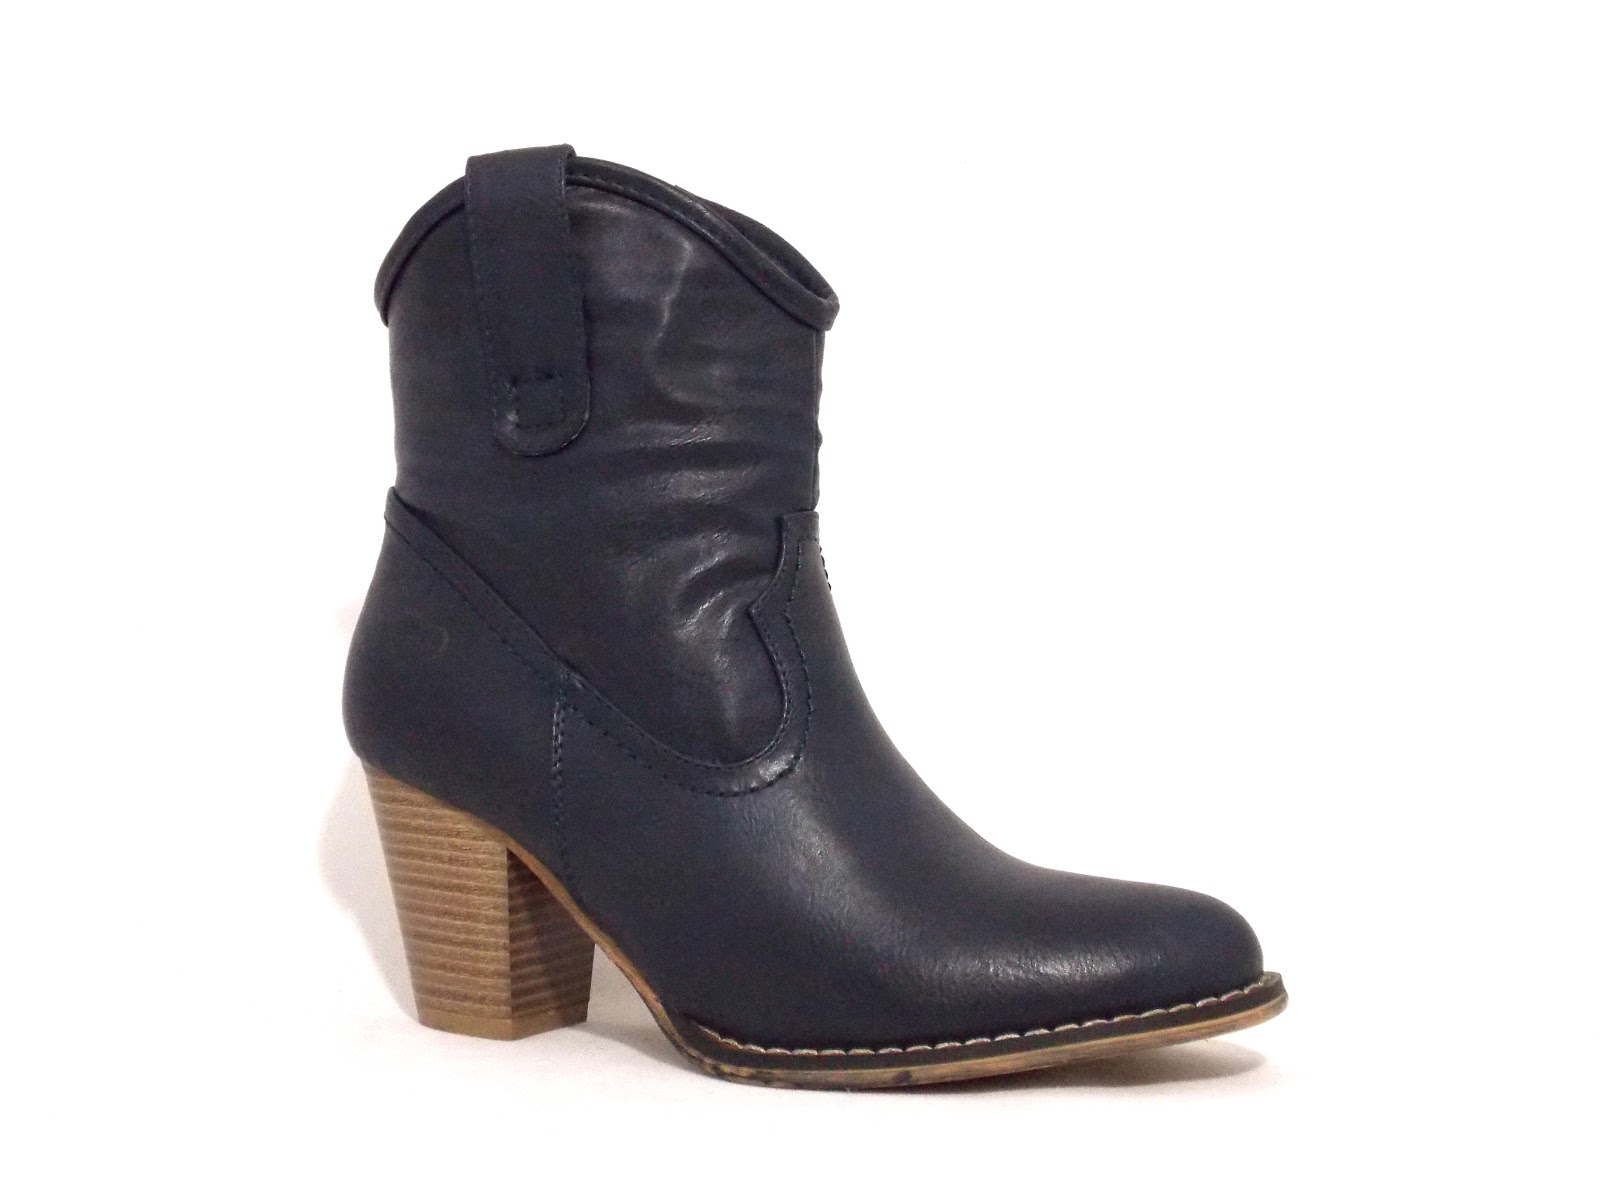 Bottines Noires Fabs Njom6aZTp